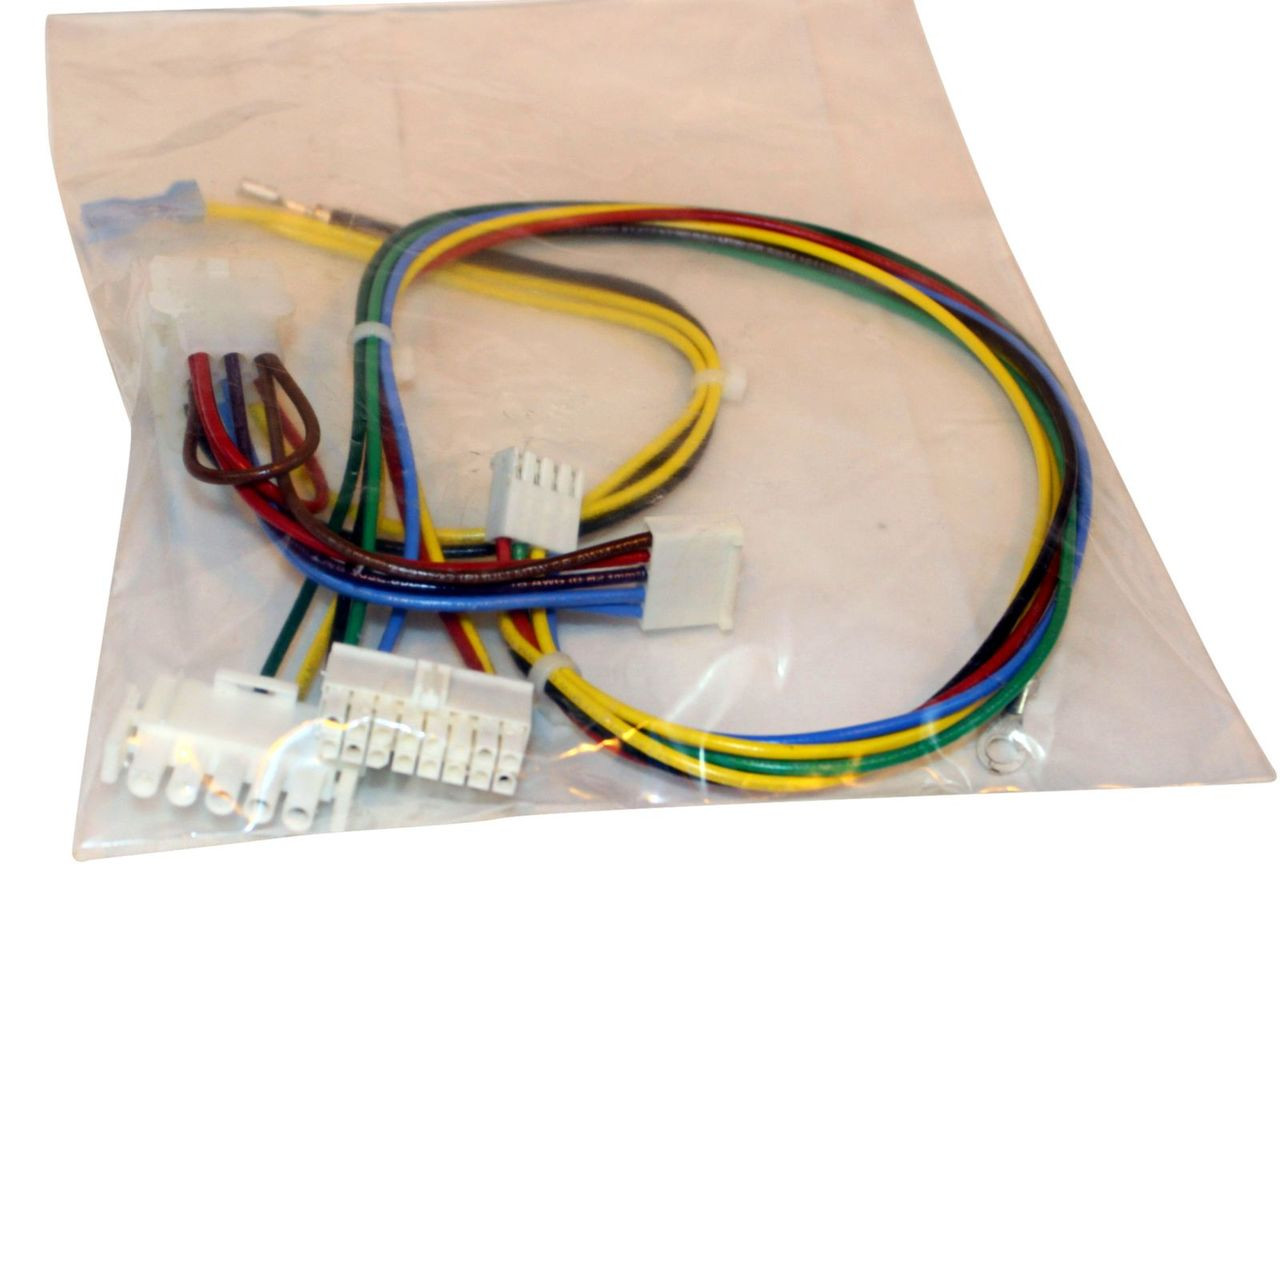 328130 701 wiring harnessWiring Harness Reviews #14